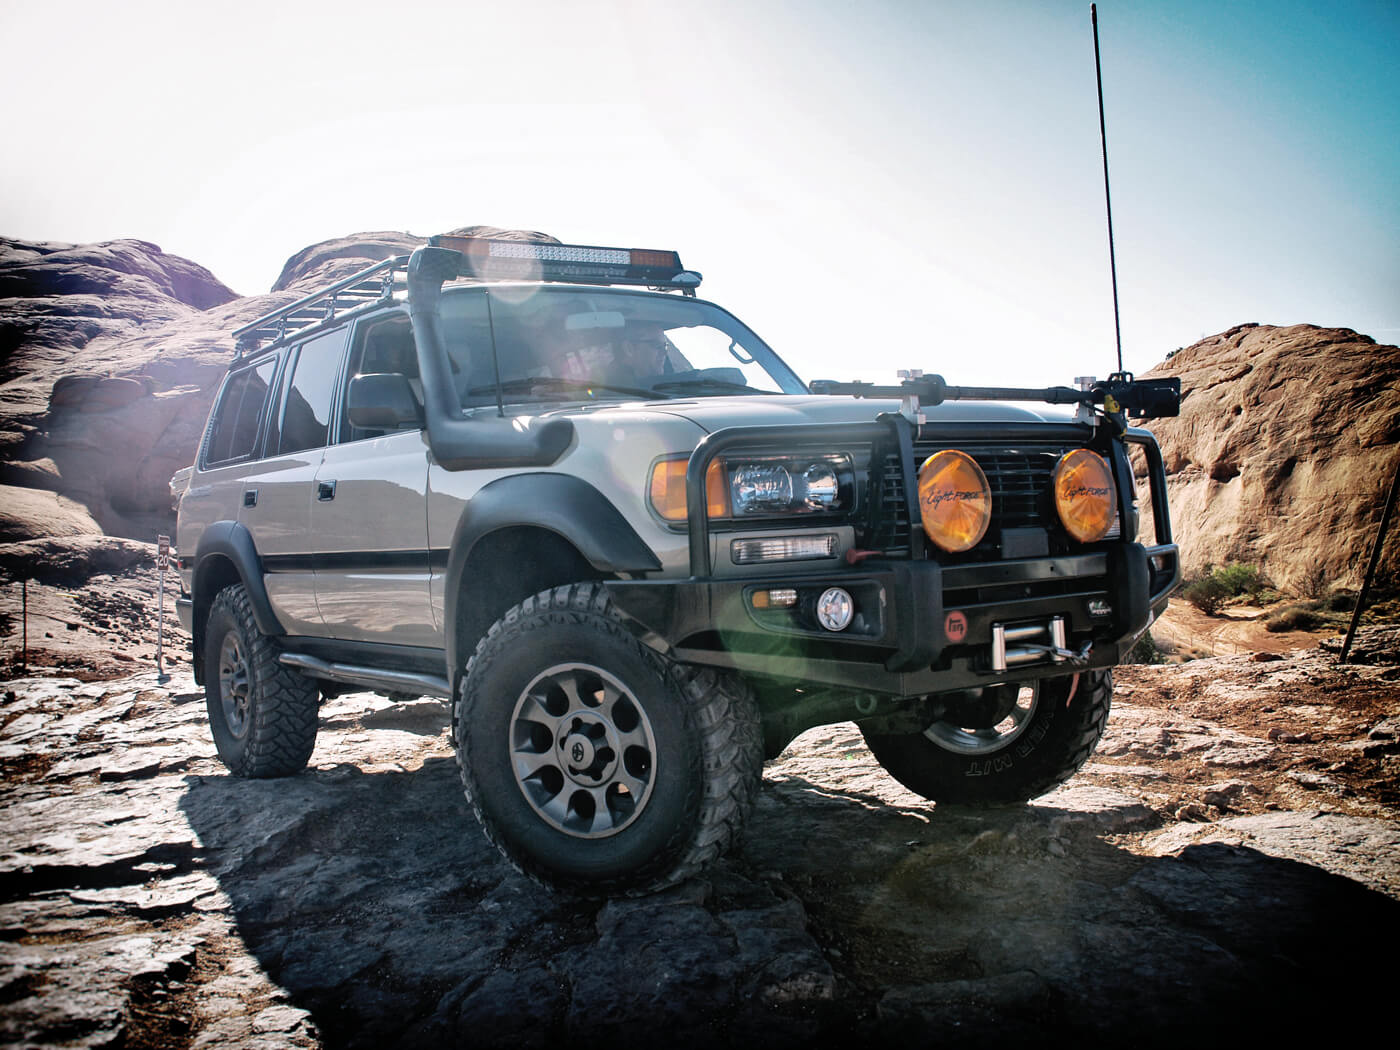 Keep On Running: A 1992 Toyota FJ80 Land Cruiser's Legacy